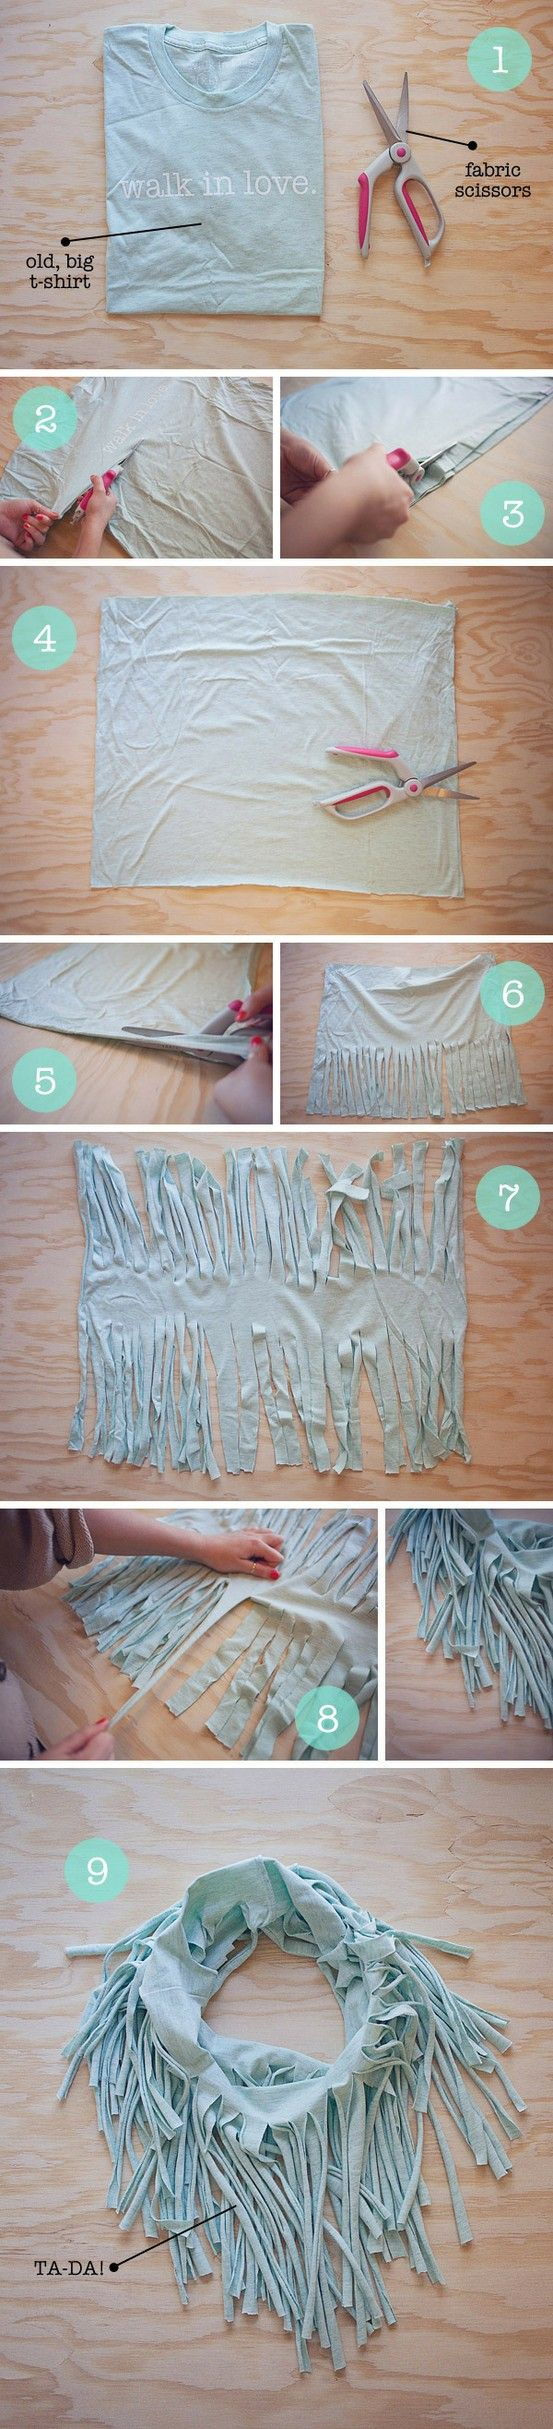 103 best t shirt scarf ideas and instructions images on pinterest diy t shirt scarf diy diy ideas diy crafts do it yourself diy tips diy images do it yourself images diy photos diy clothes diy fashion diy accessories solutioingenieria Image collections